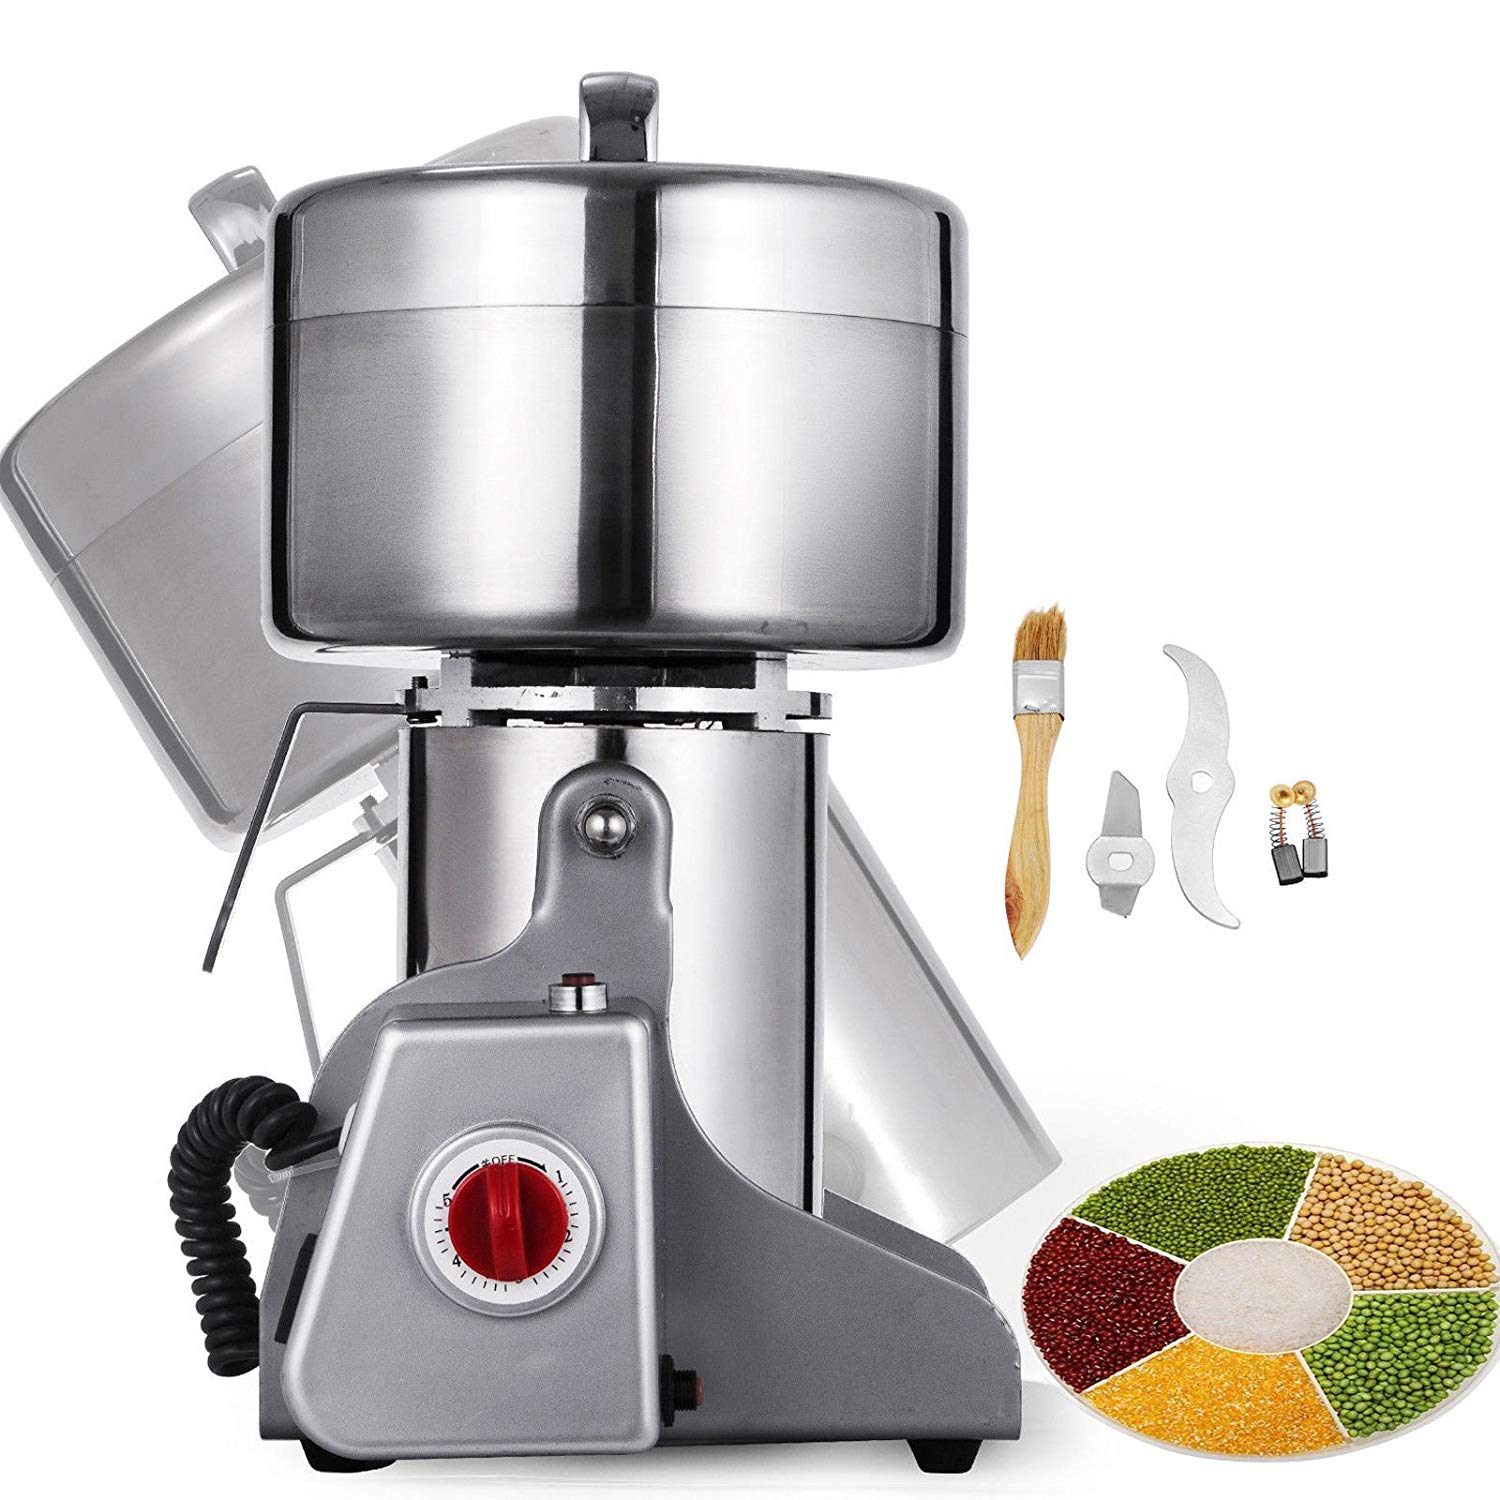 Happybuy Grain Grinder Mill Powder Machine Swing Type Commercial Electric Mill Grinder (750g)